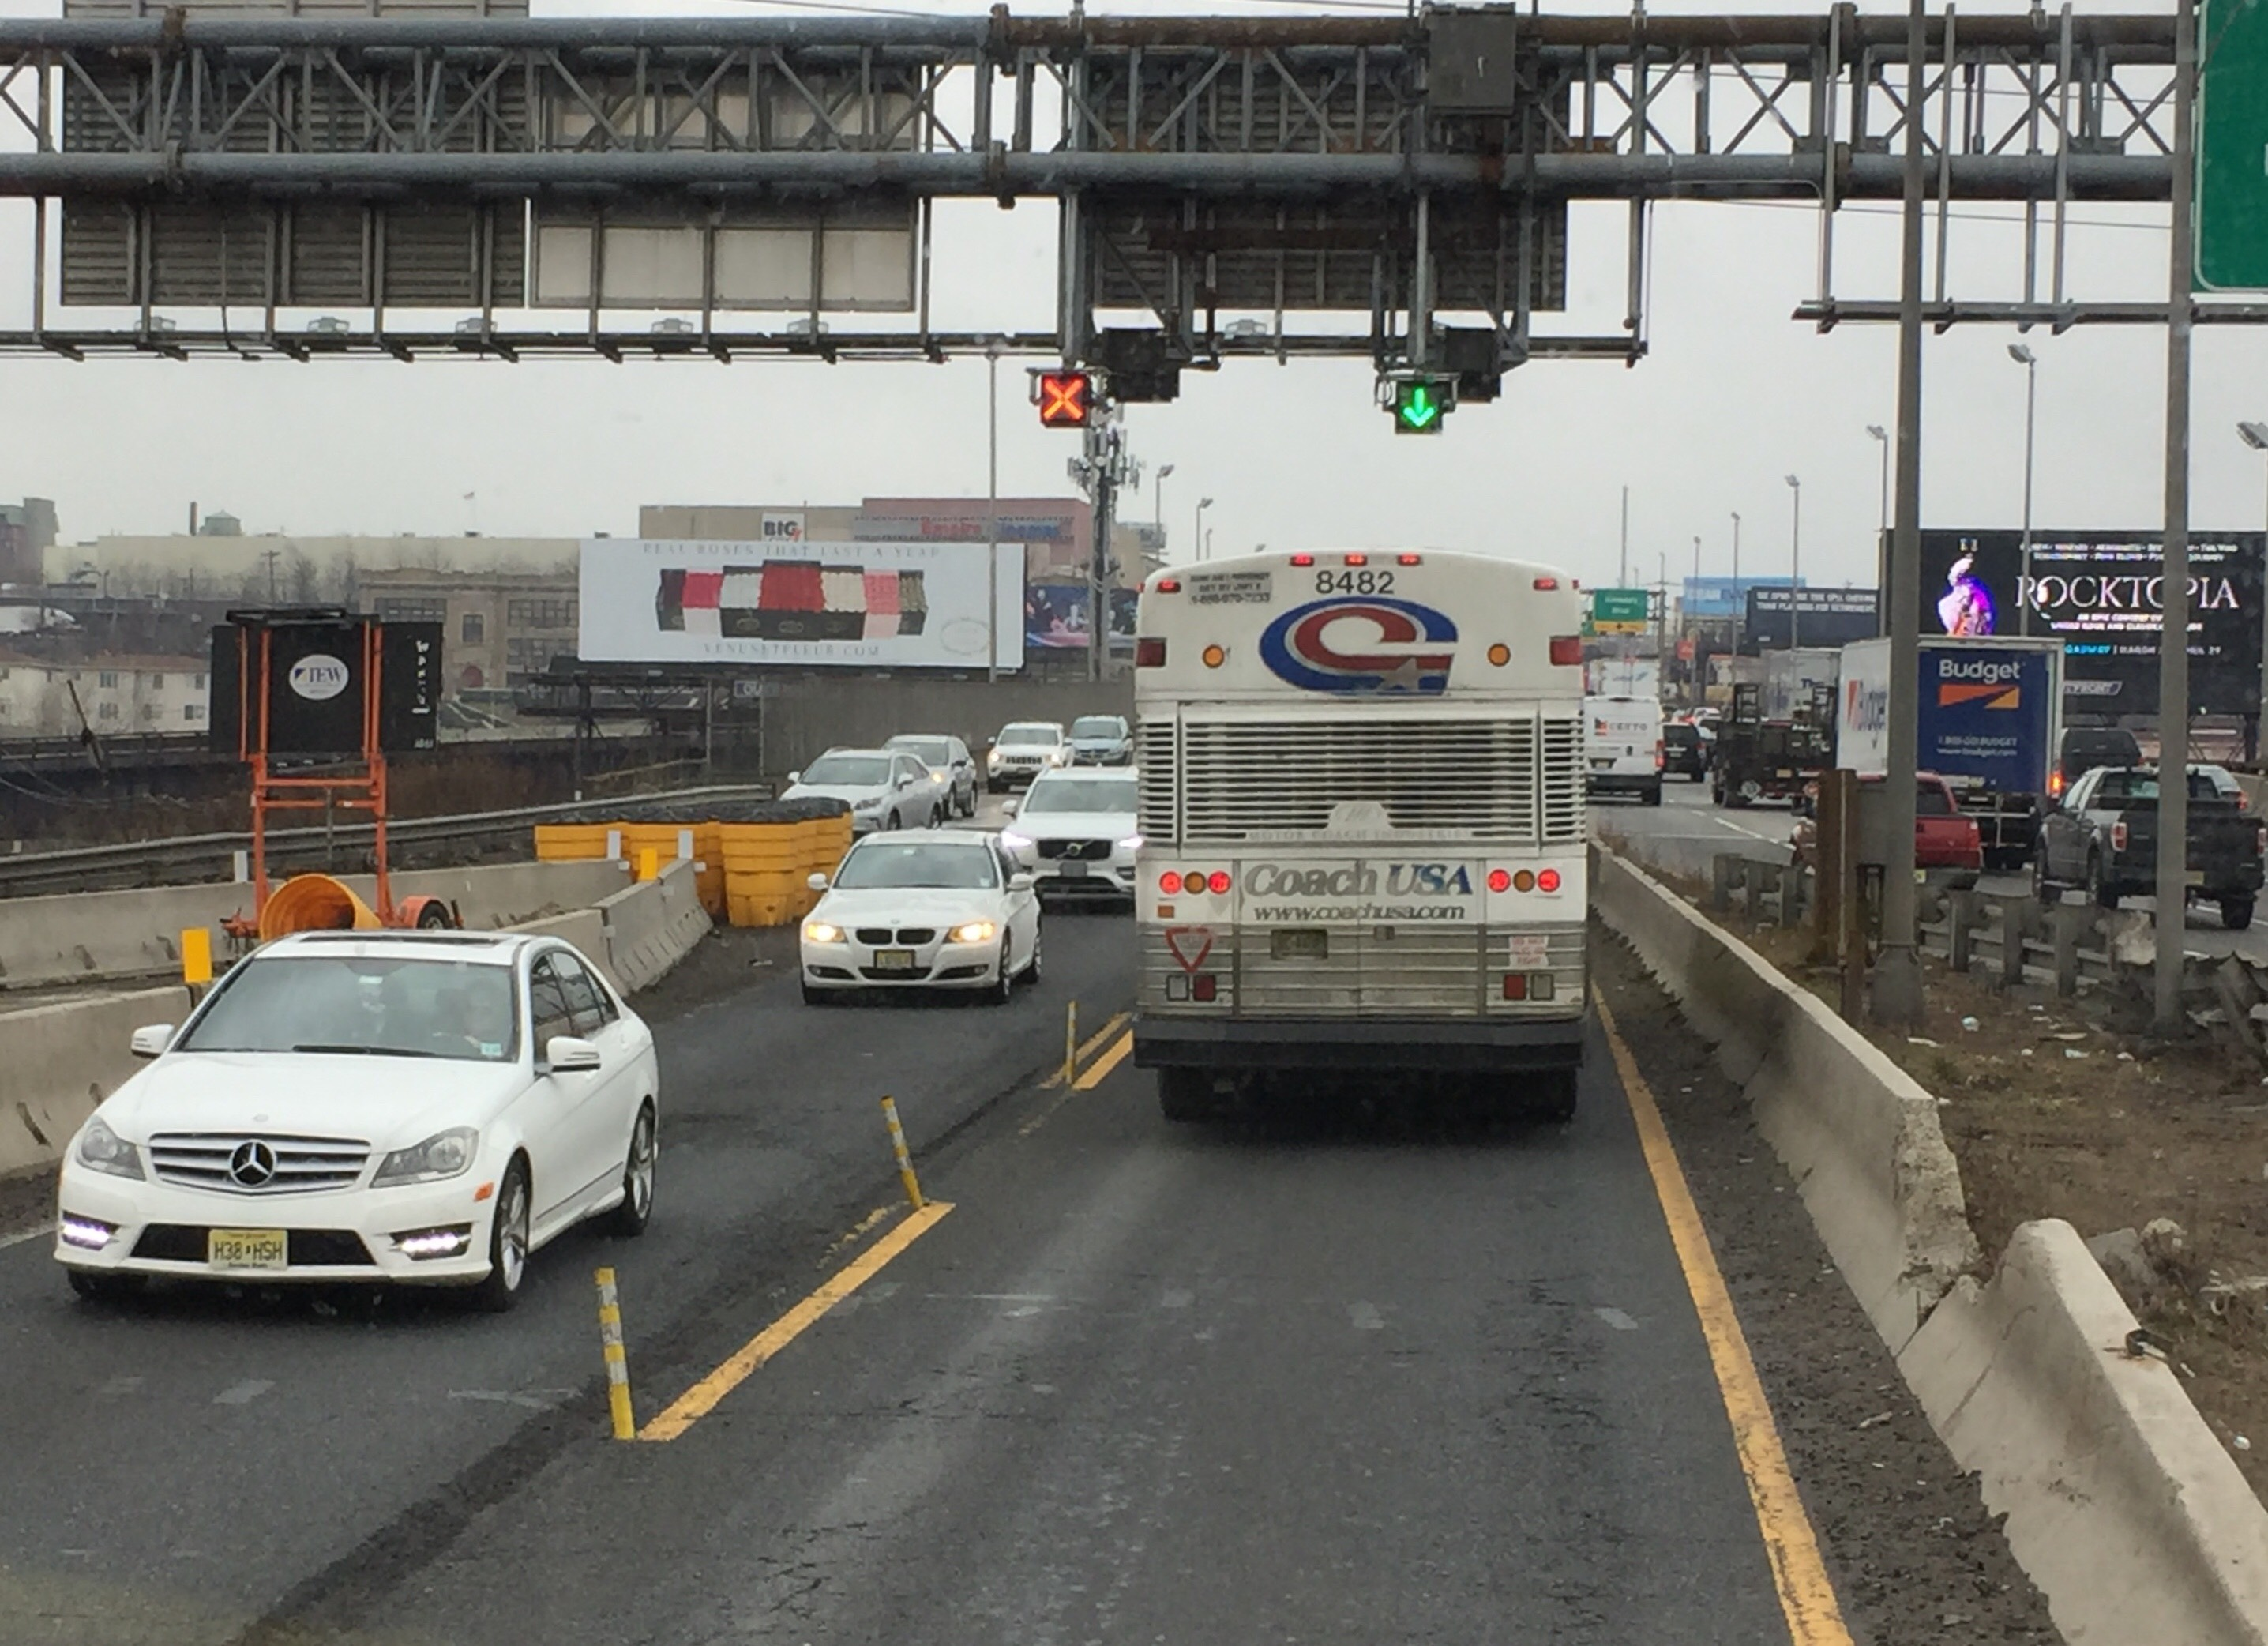 Another Bus Lane Would Ease Traffic To Nyc But There S A High Tech Reason It May Not Happen Nj Com